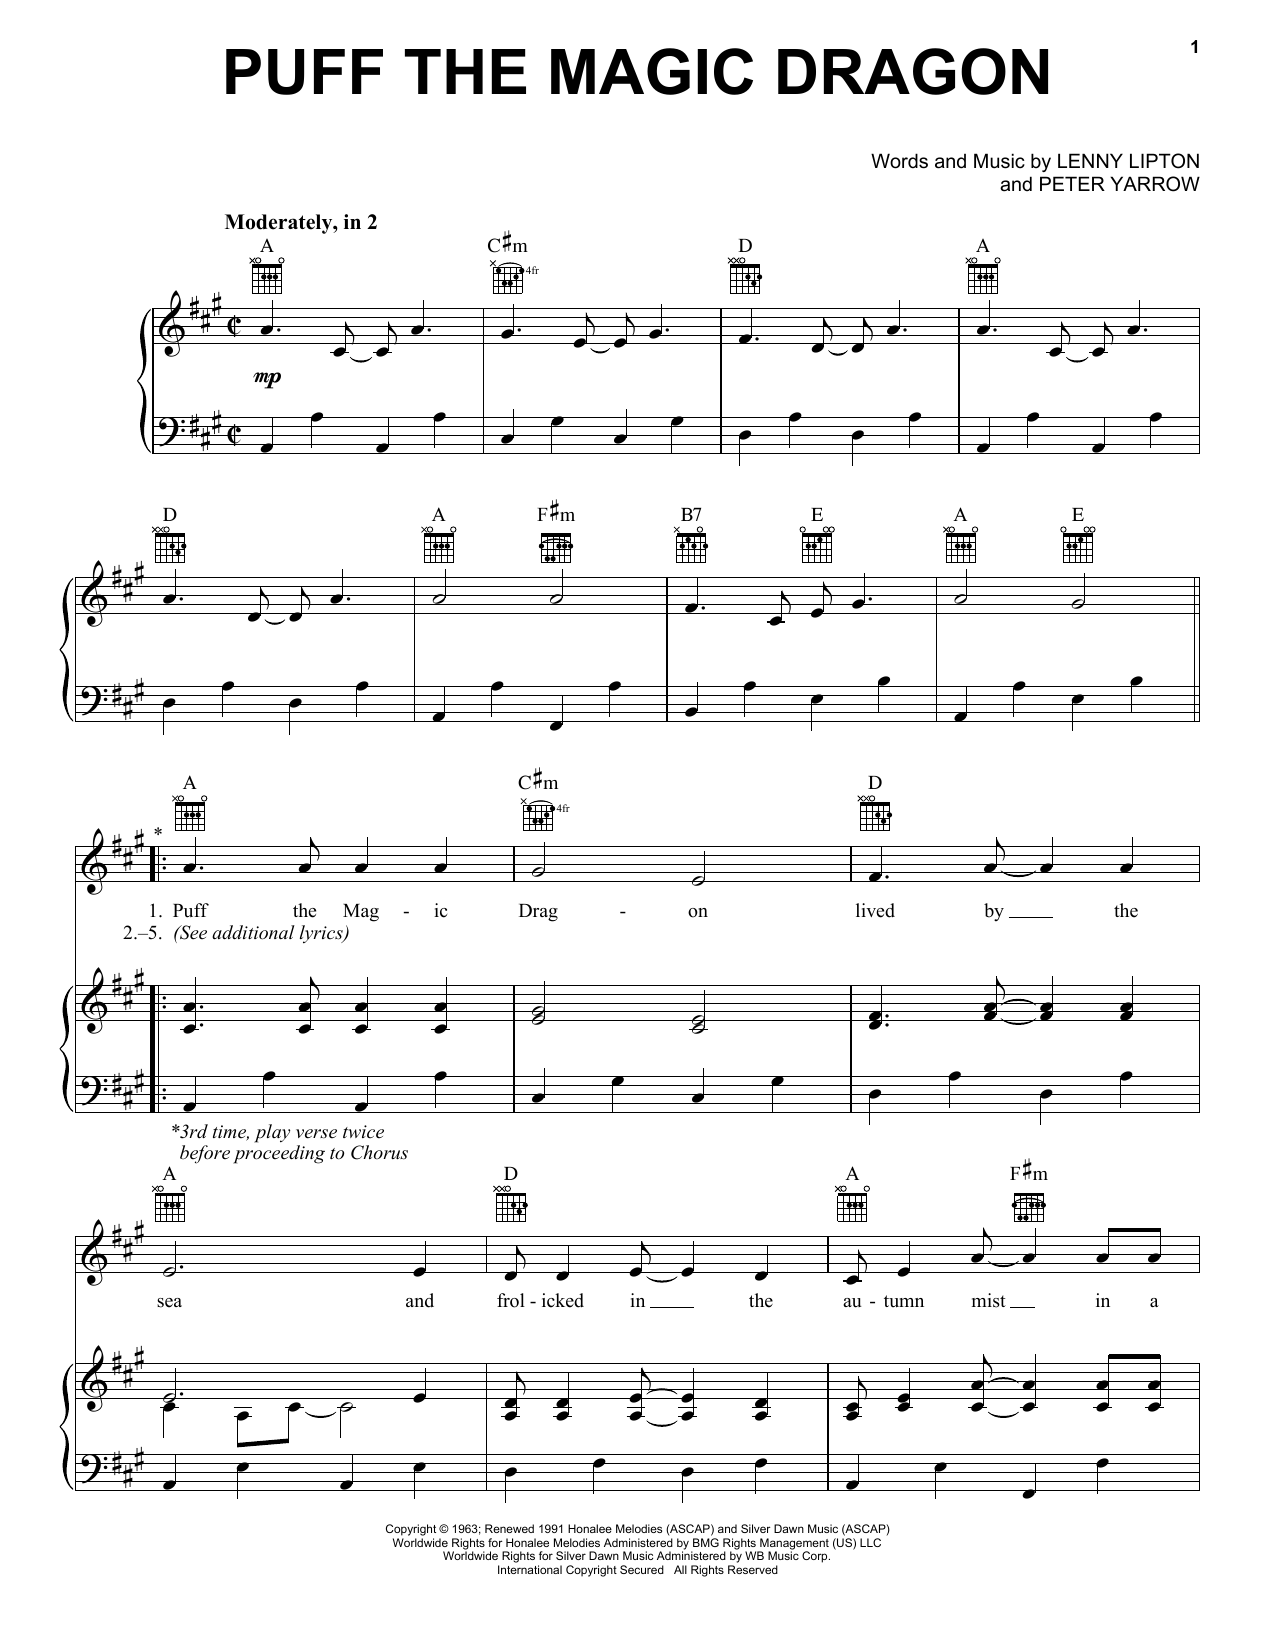 Puff The Magic Dragon sheet music for voice, piano or guitar by Peter Yarrow